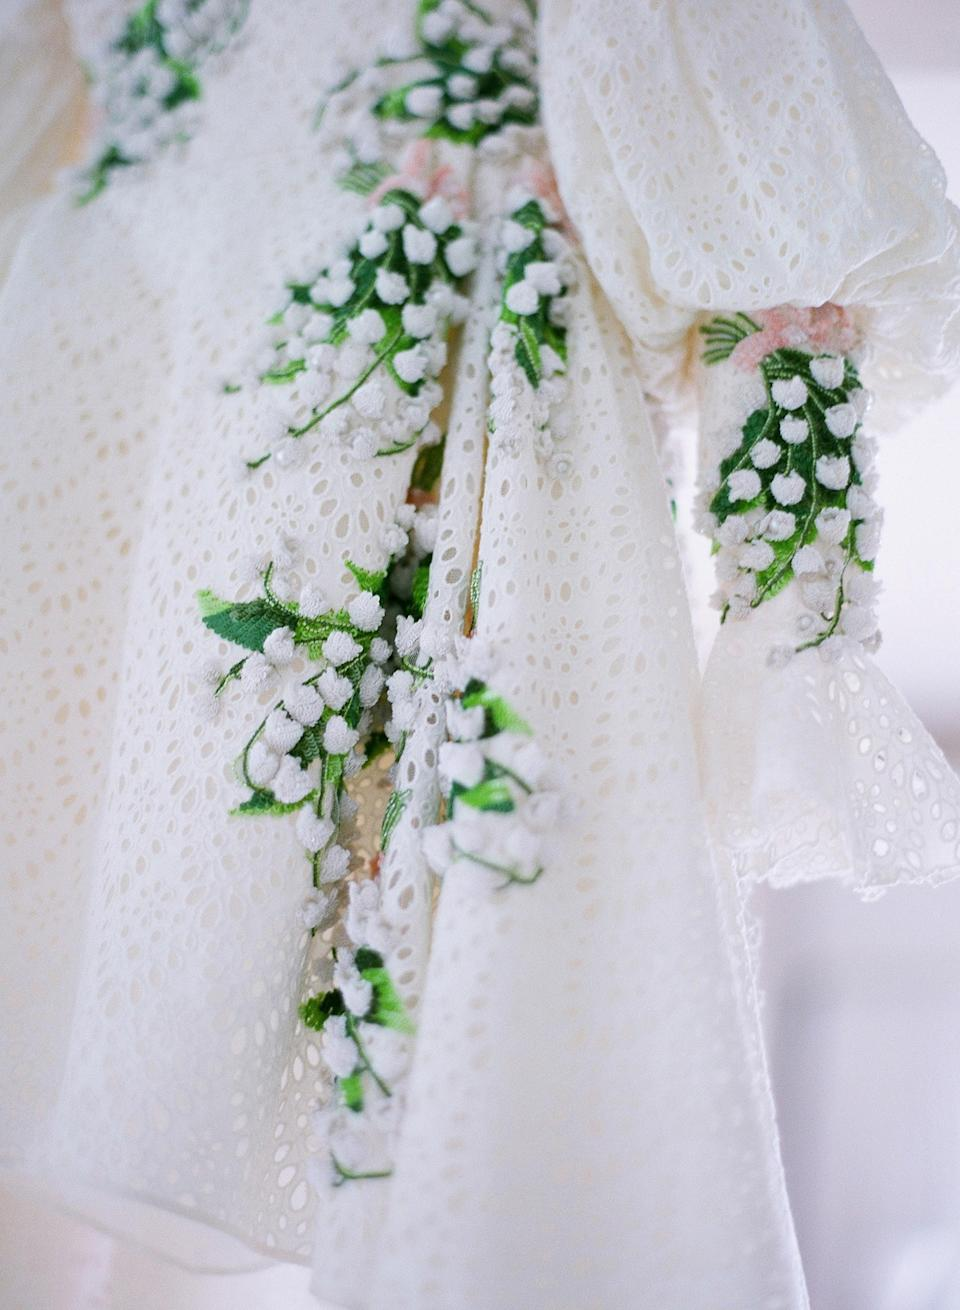 I have always loved the timeless elegance of Giambattista Valli's designs. Wanting my dress to reflect the romance and ease of the evening, I was immediately drawn to the vintage eyelet lace and hand-embroidered lily of the valley. It was me in a dress!